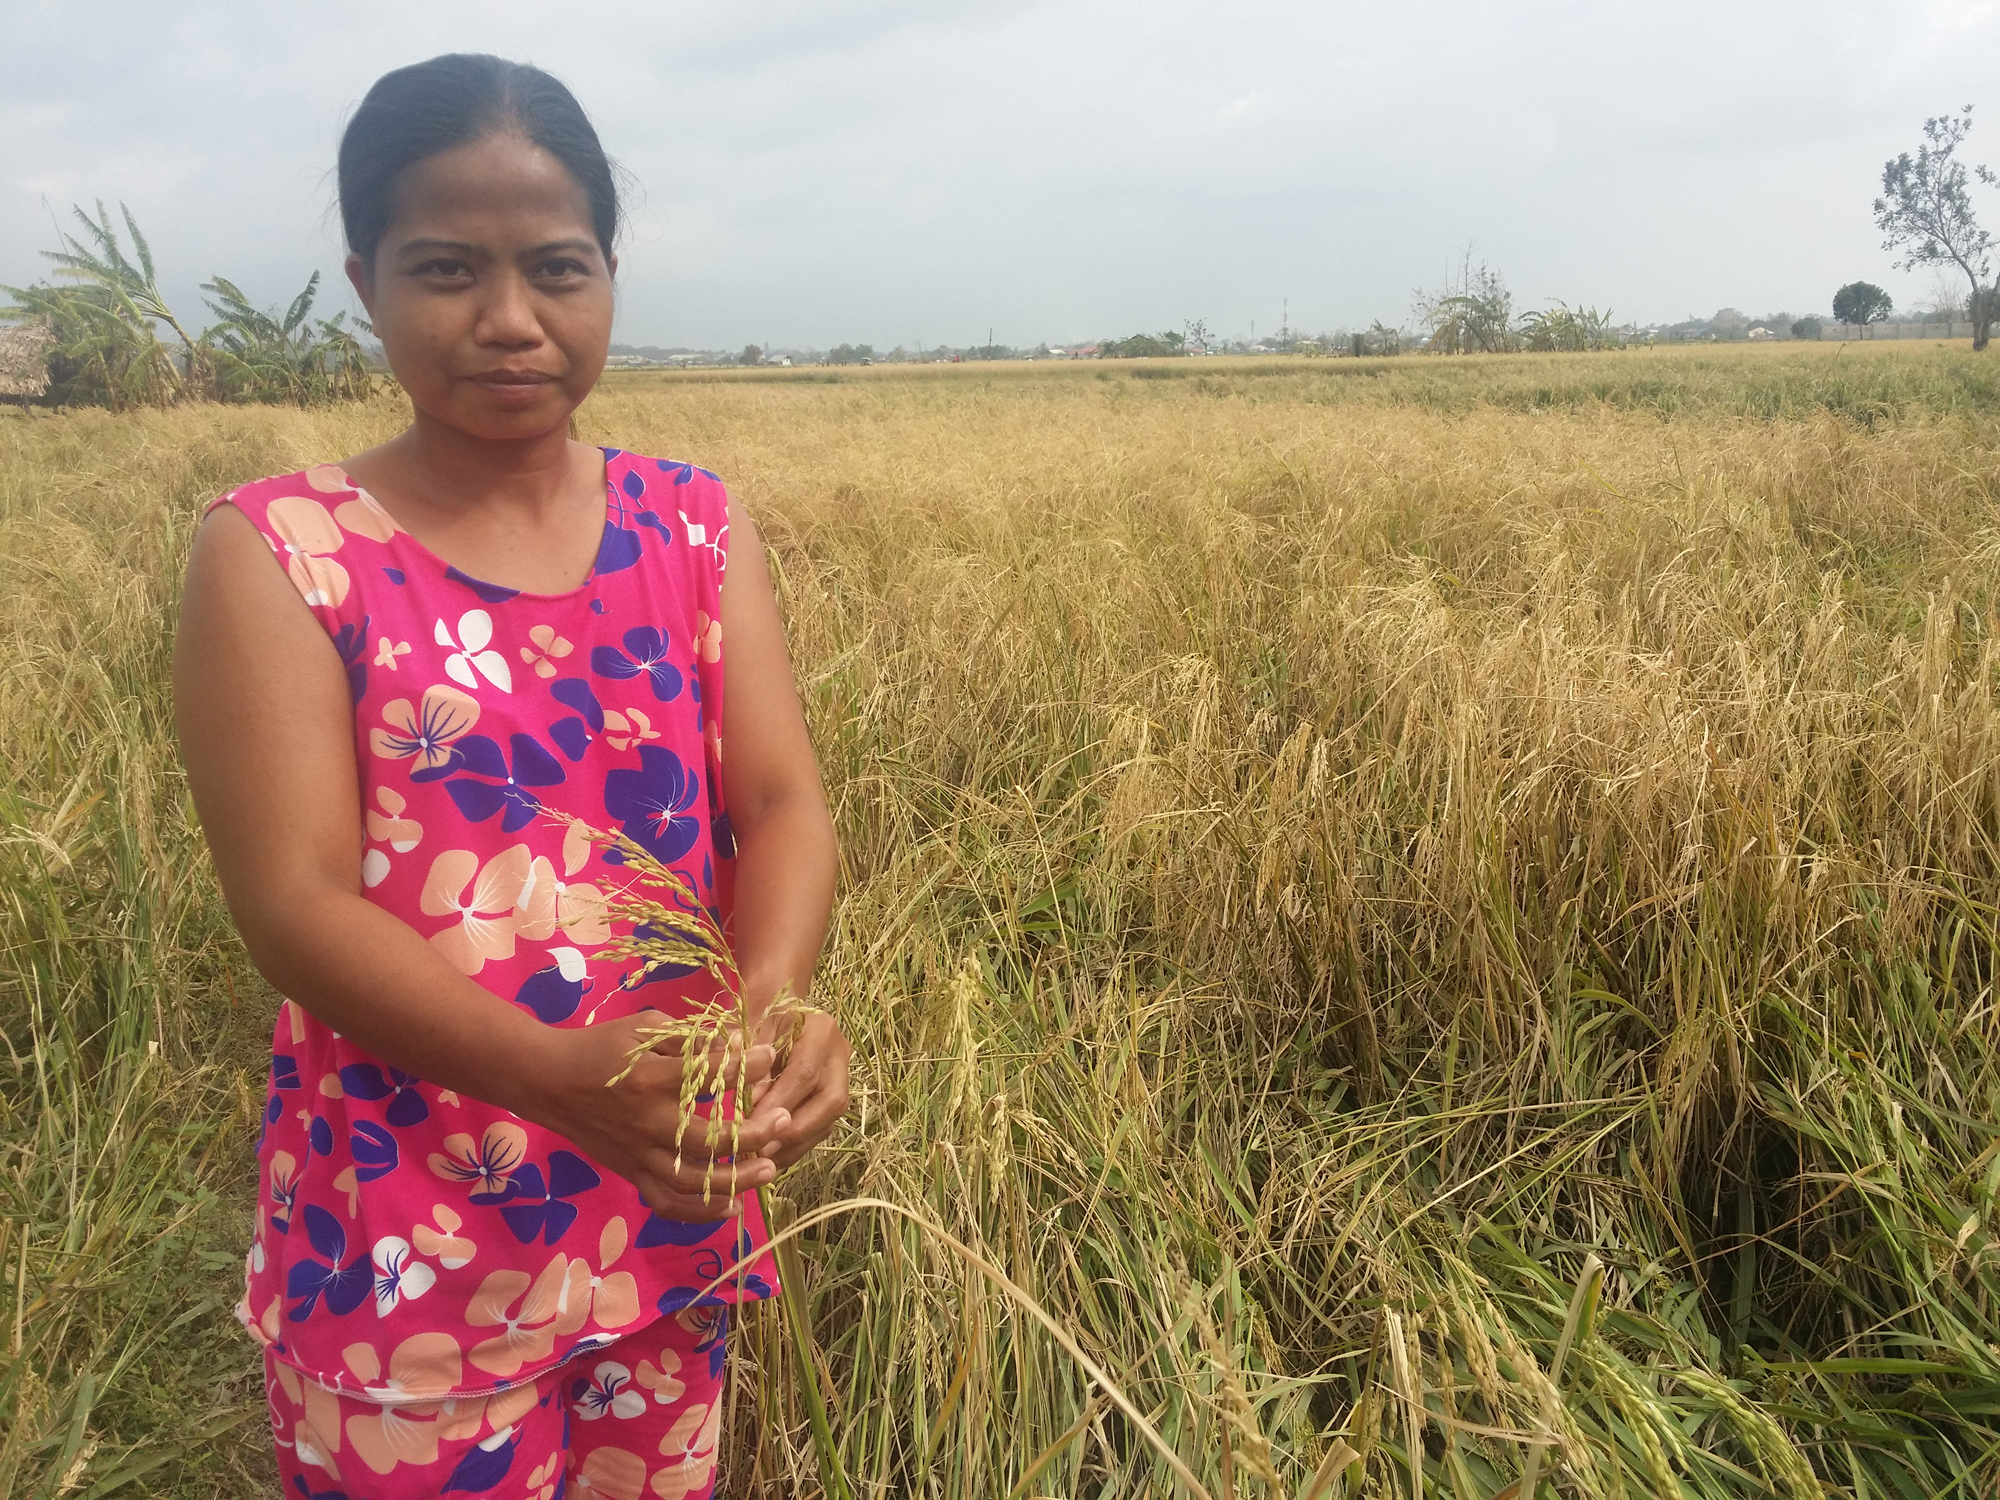 Typhoon Mangkhut severely damaged Emerita's rice fields